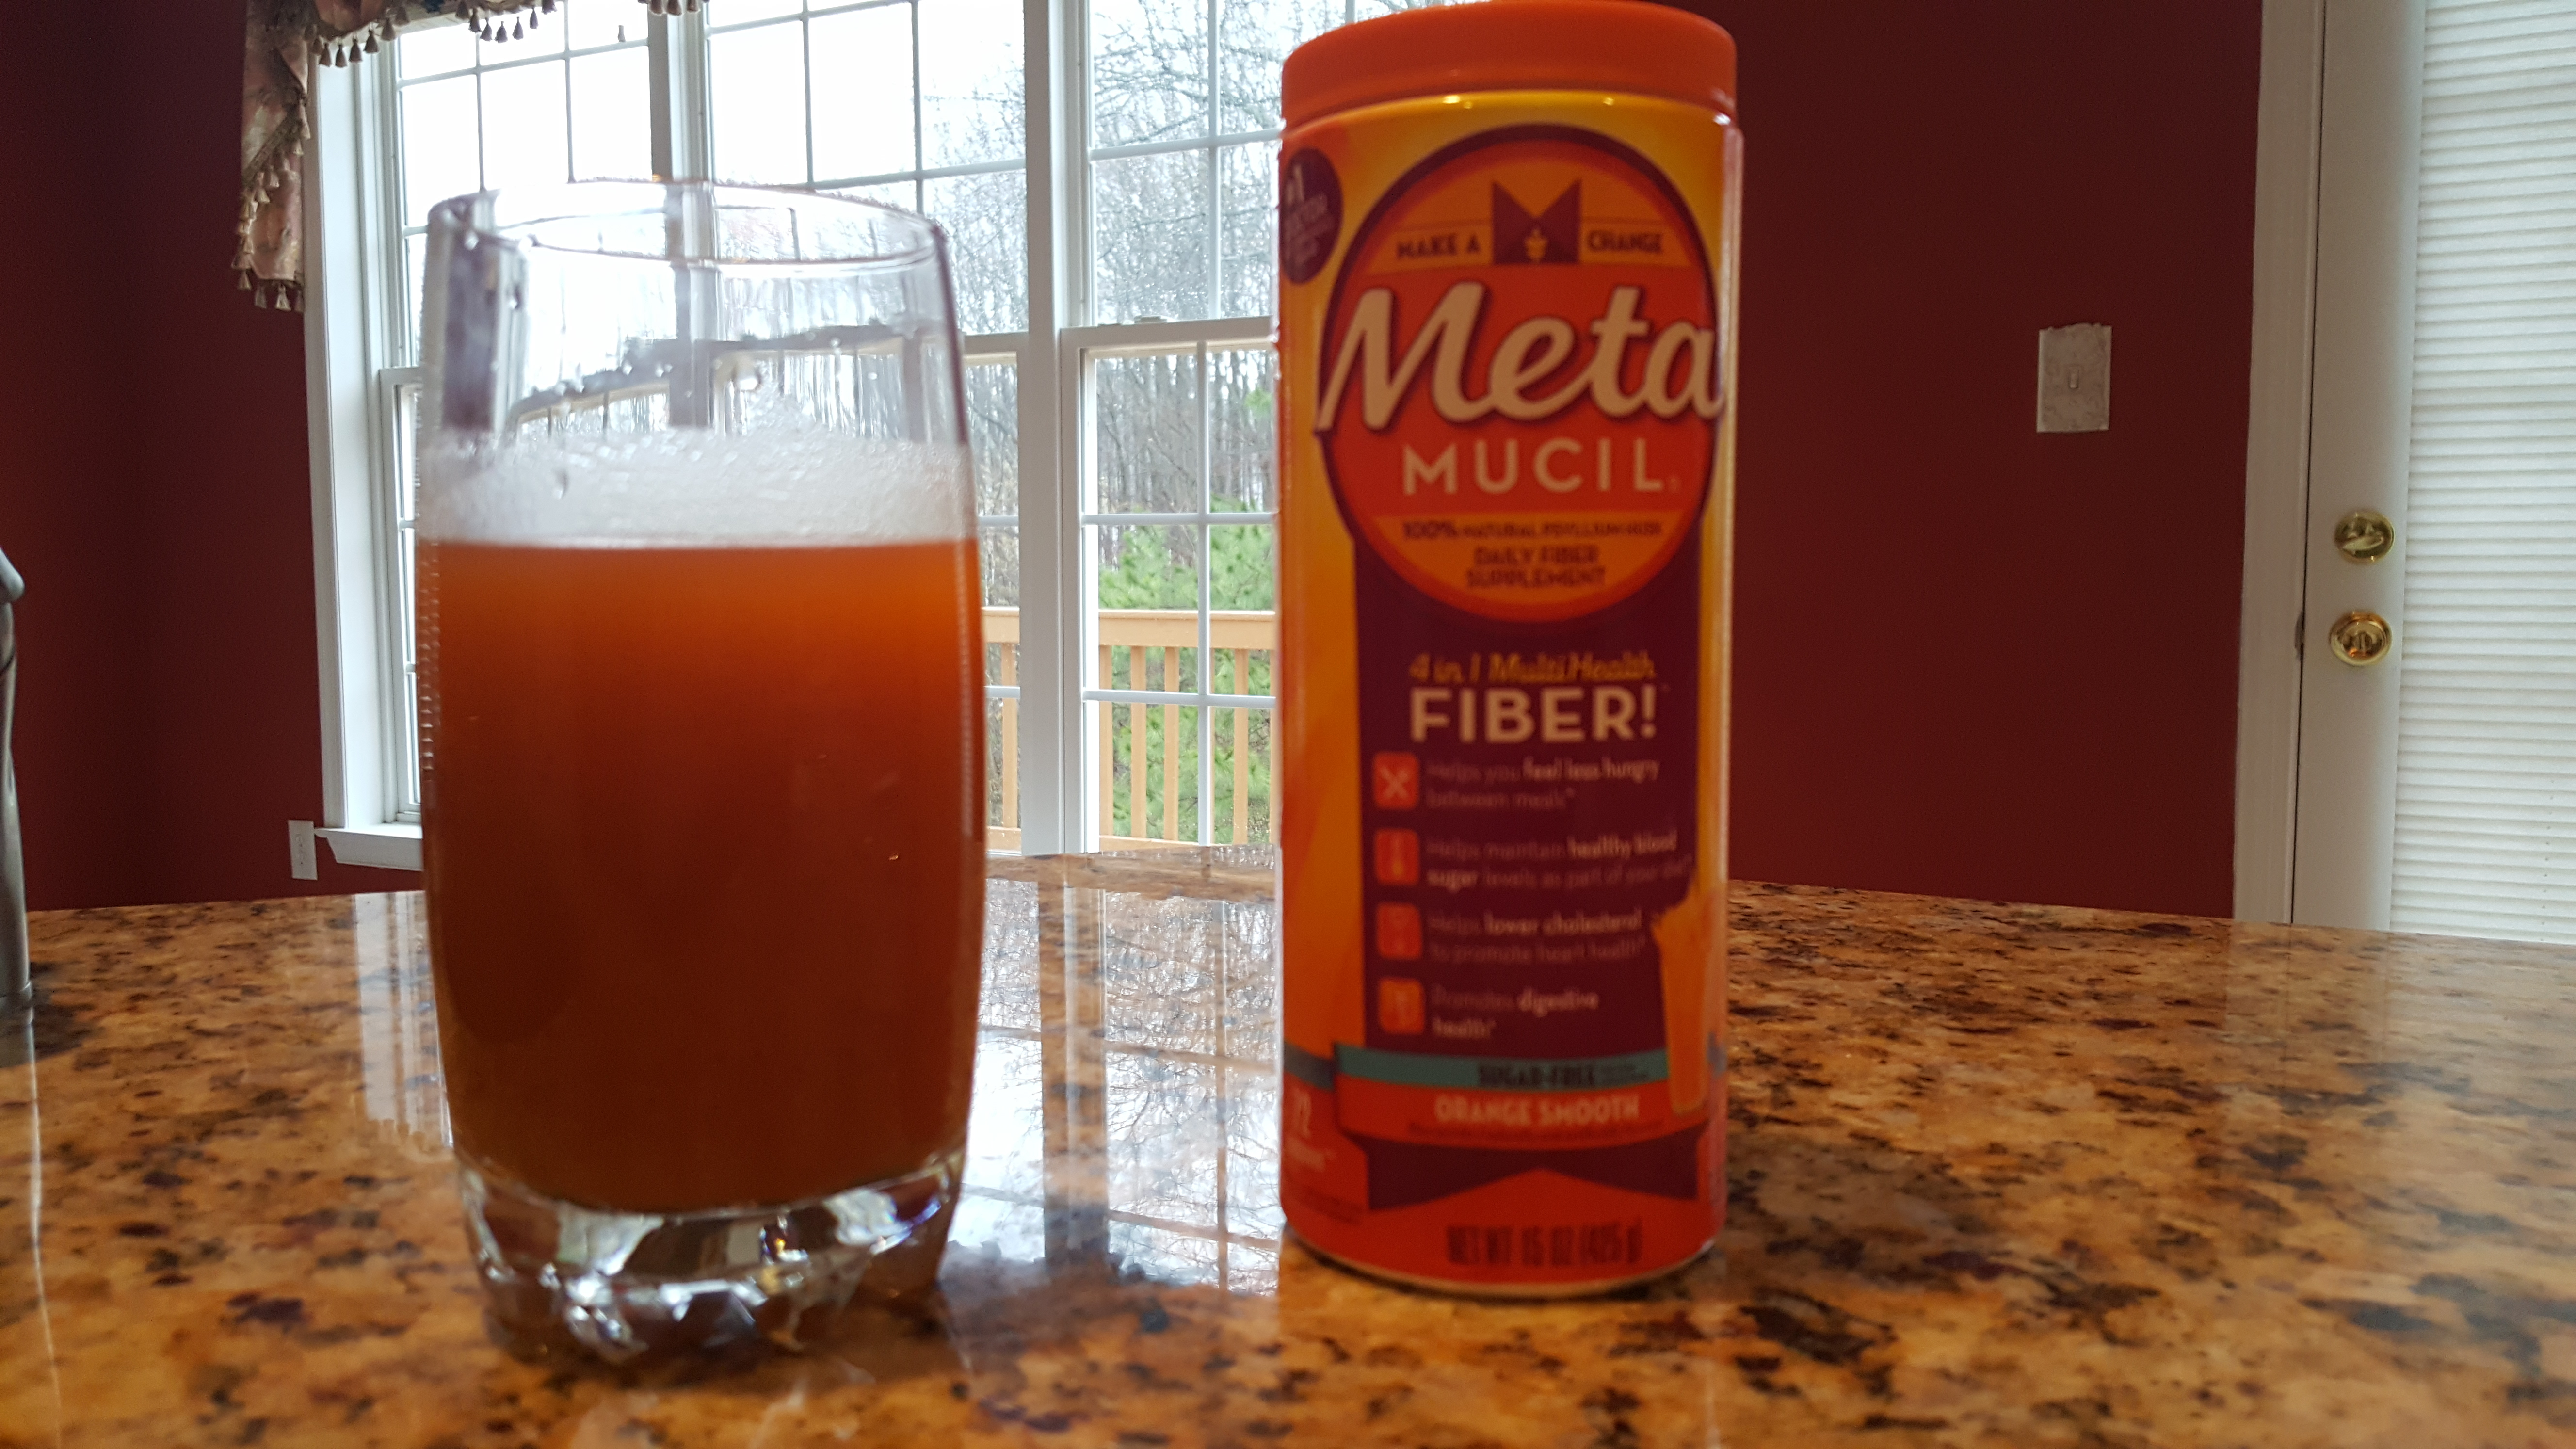 Metamucil-fiber-weight-loss-review